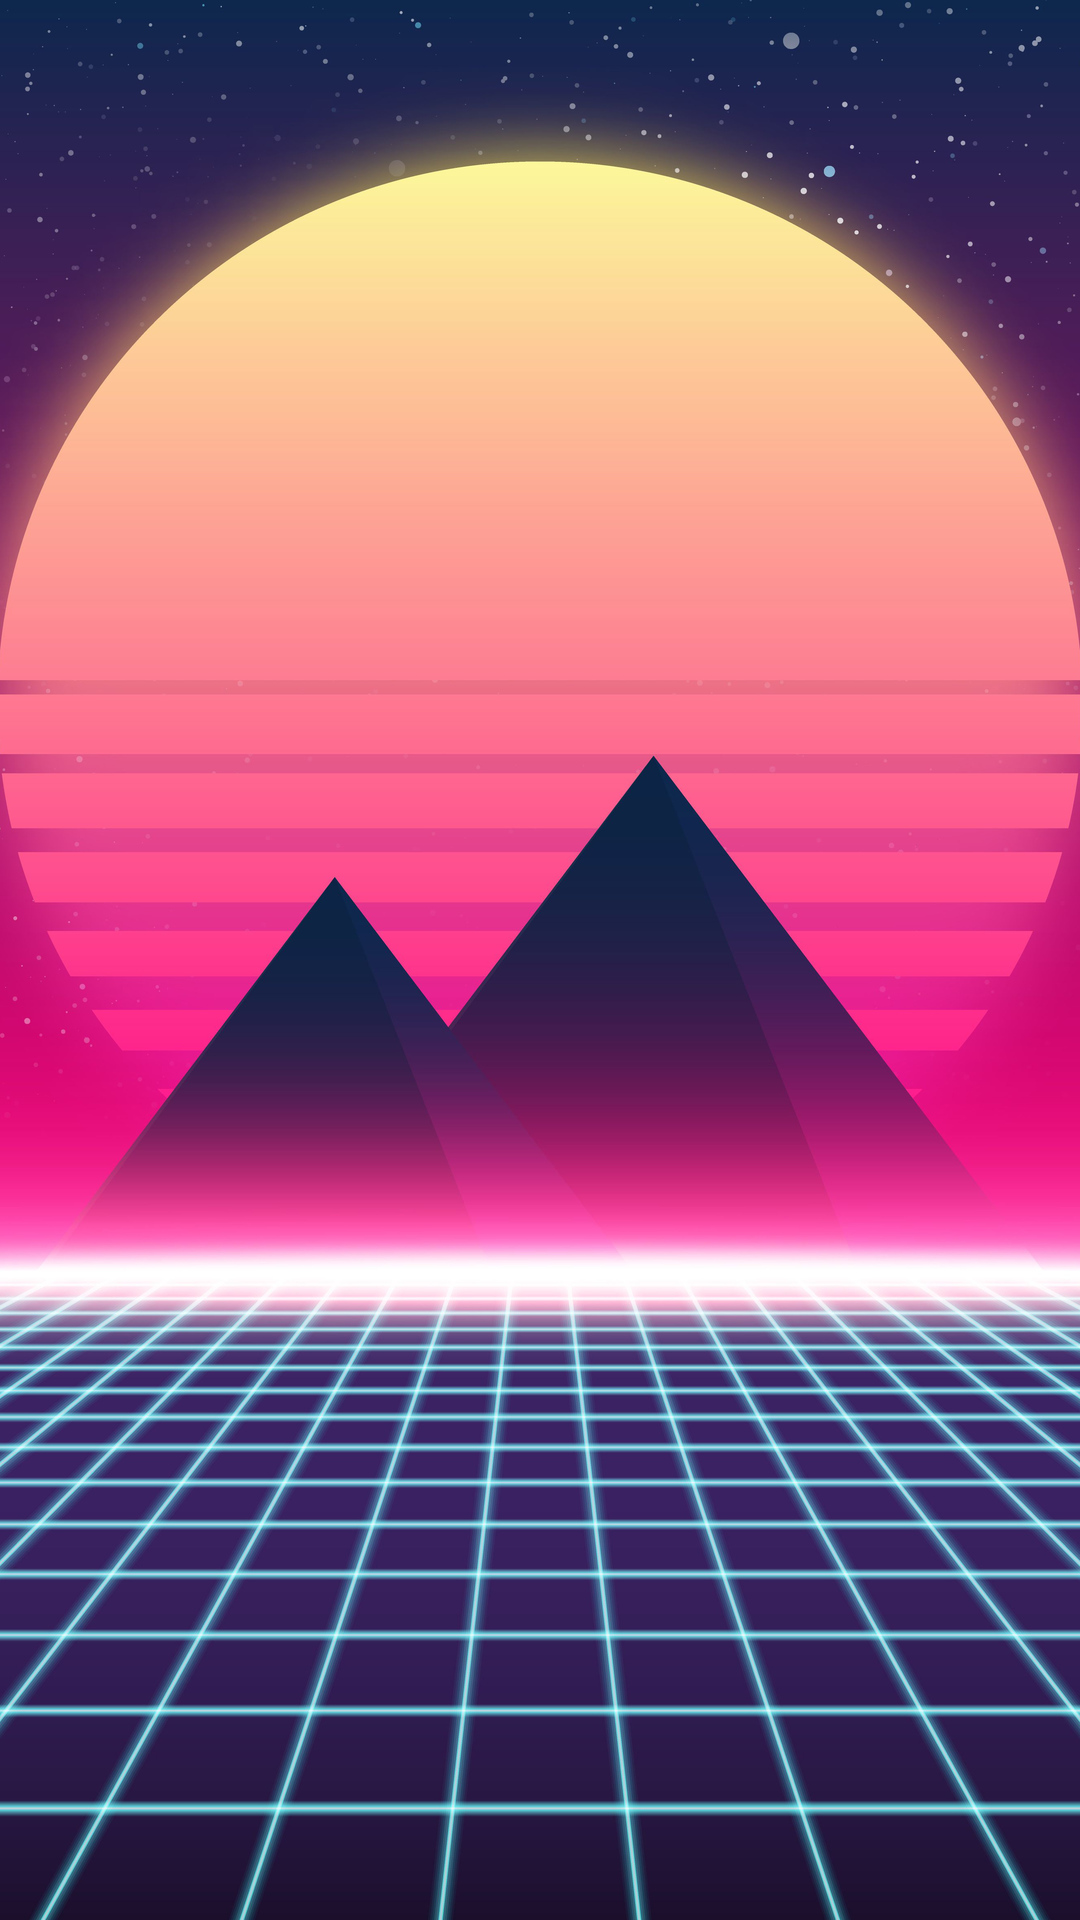 Retro Wave Wallpaper Phone Ranktechnology